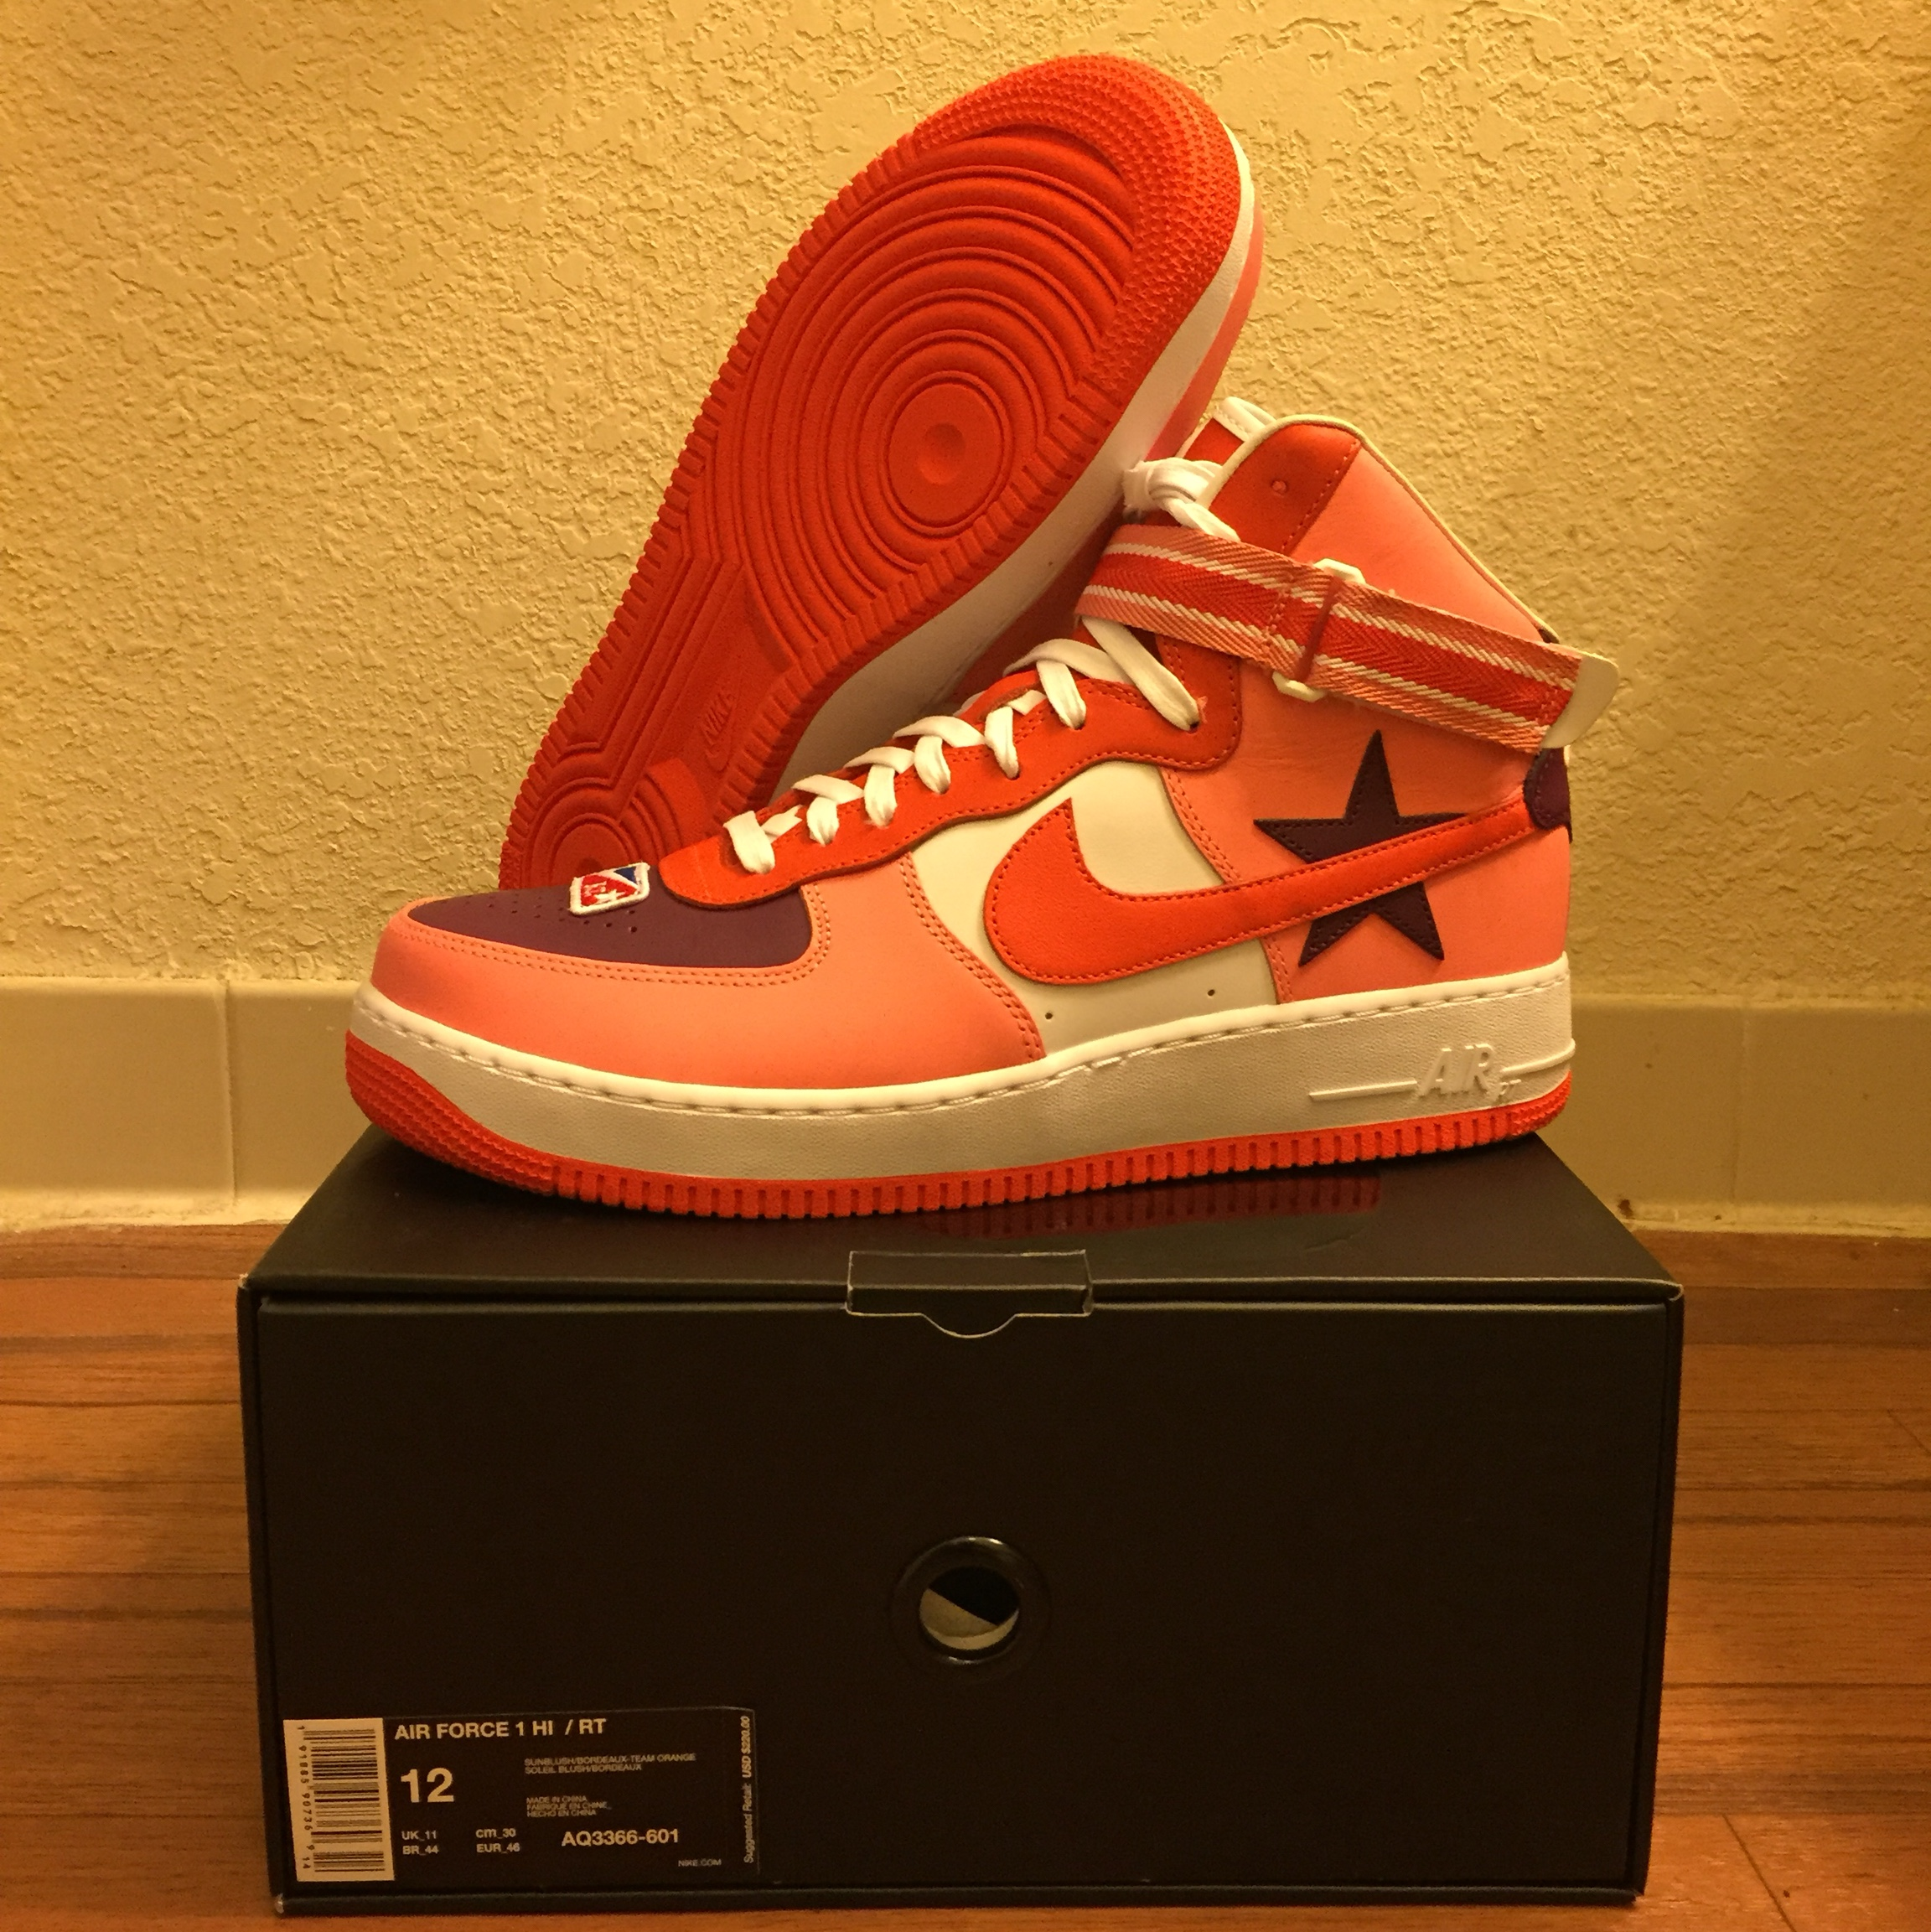 nike air force 1 high x rt icarus